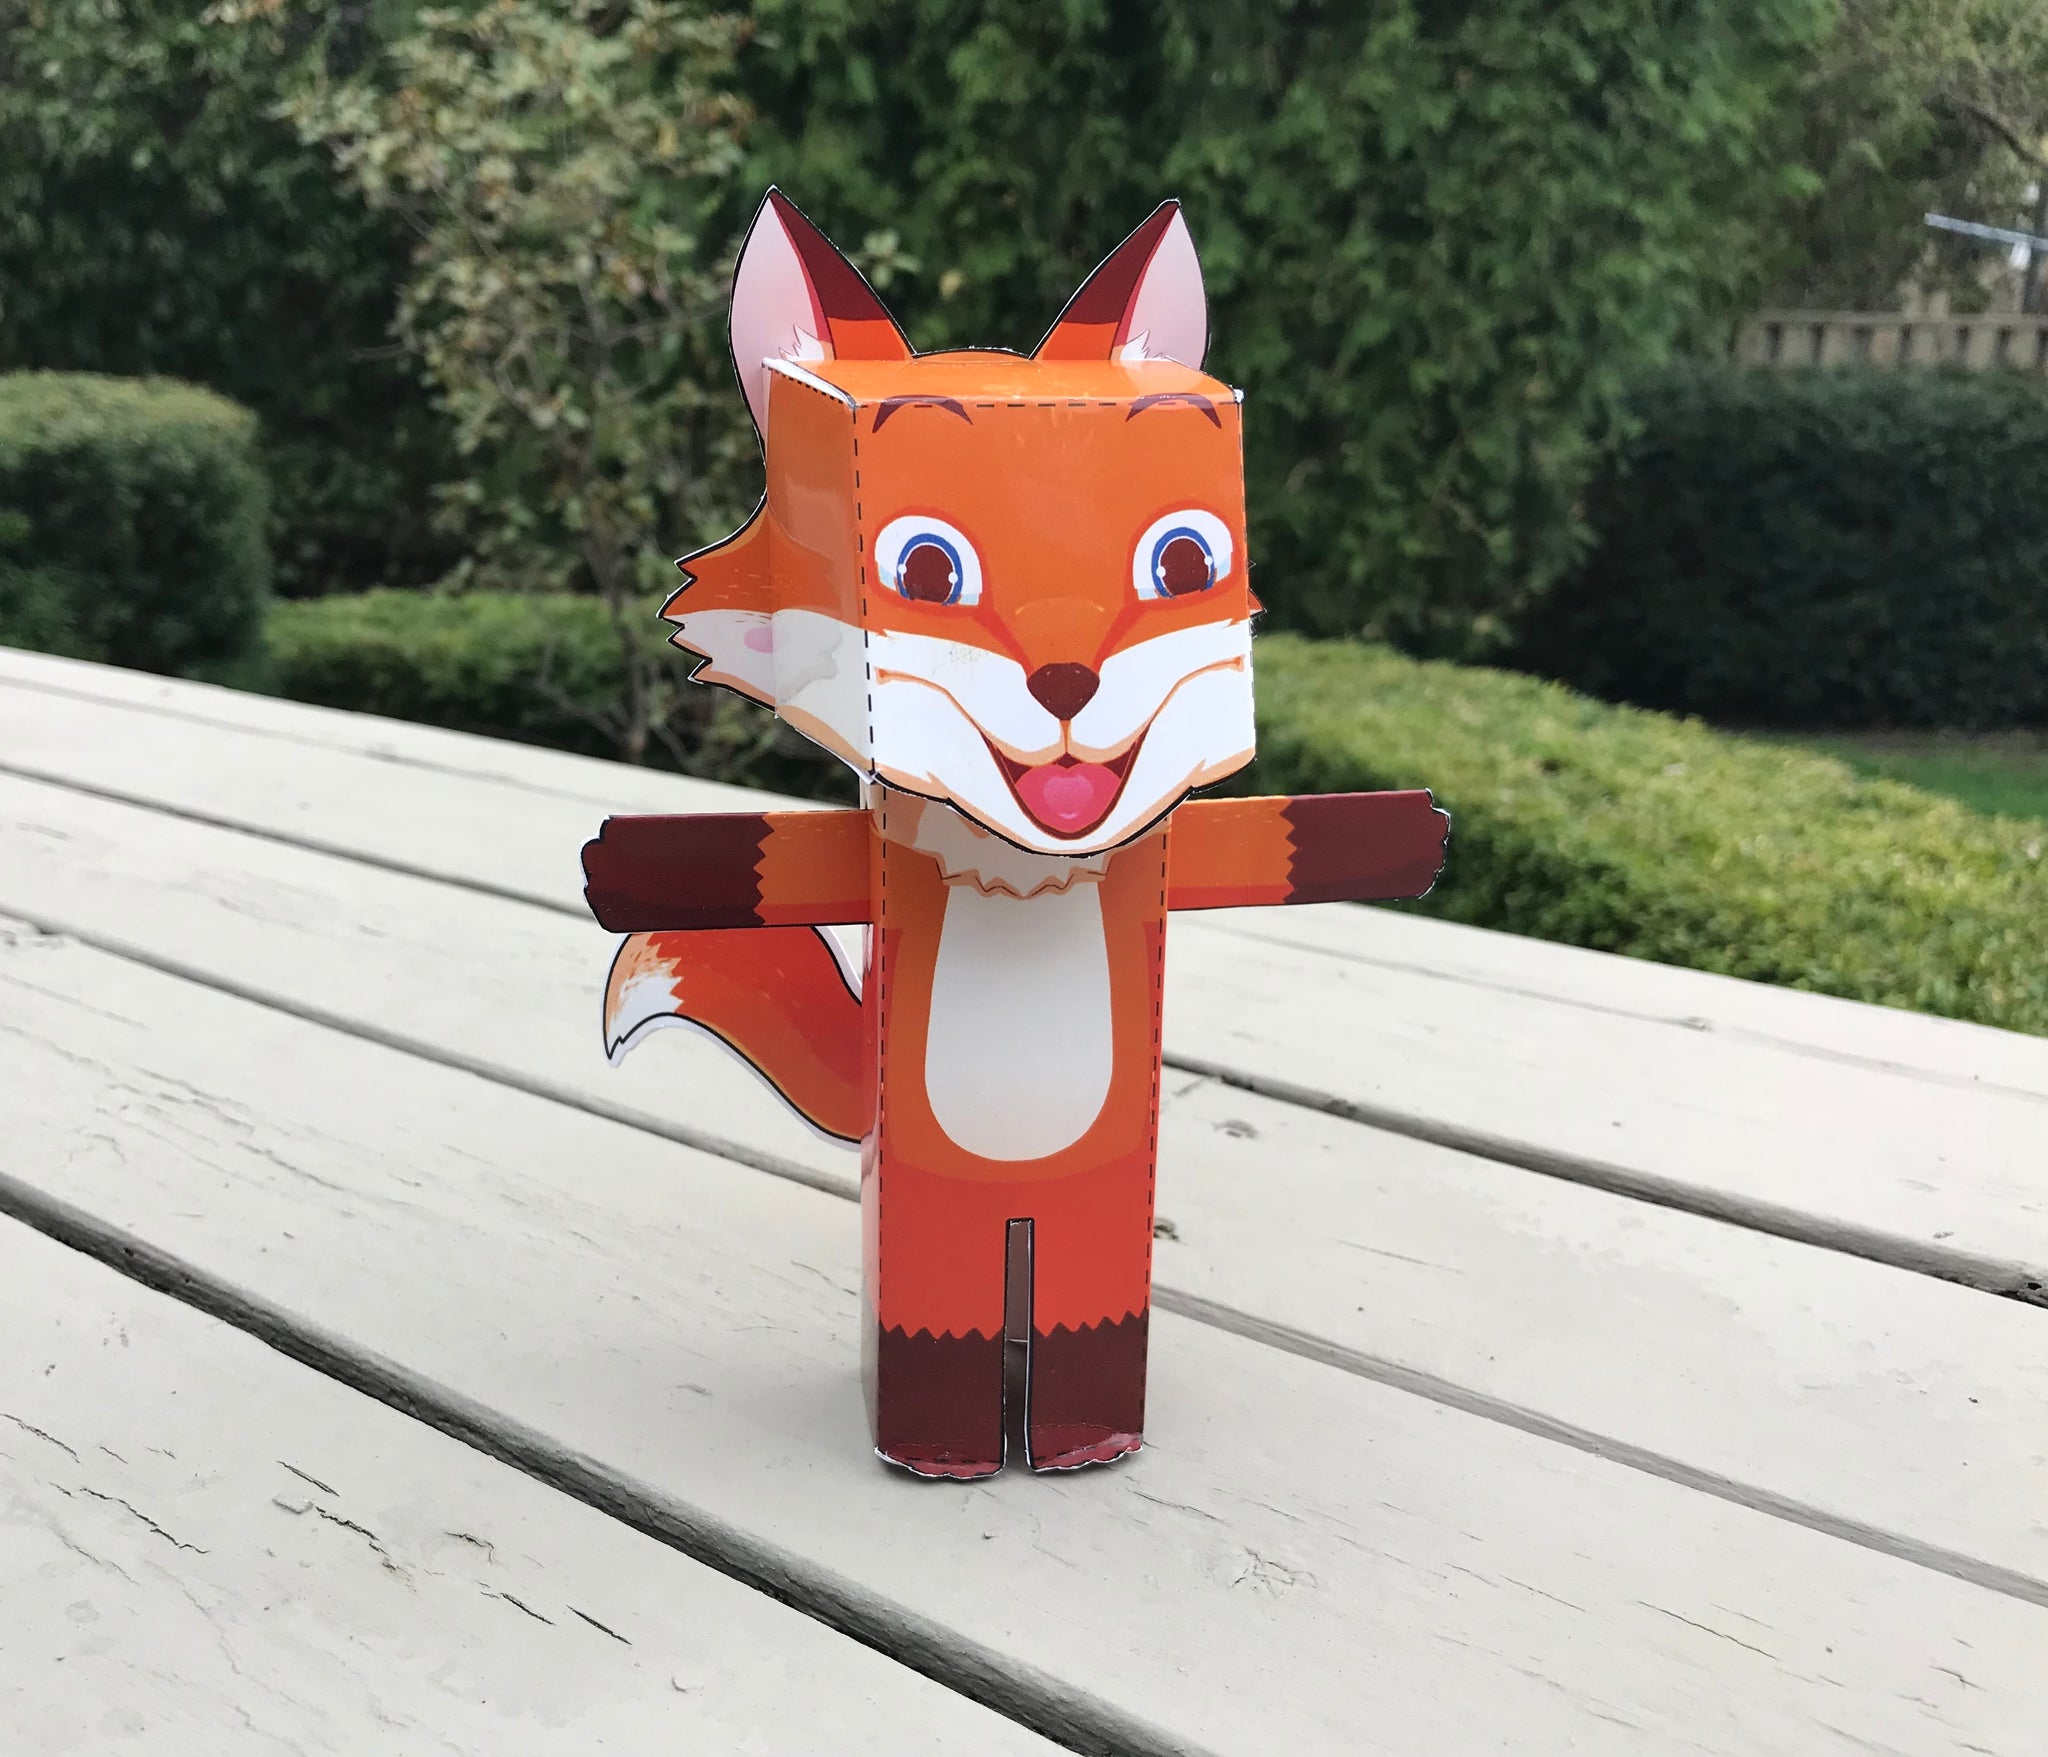 That is one boxy fox! Create your own 3D Rocco model with this simple kit!